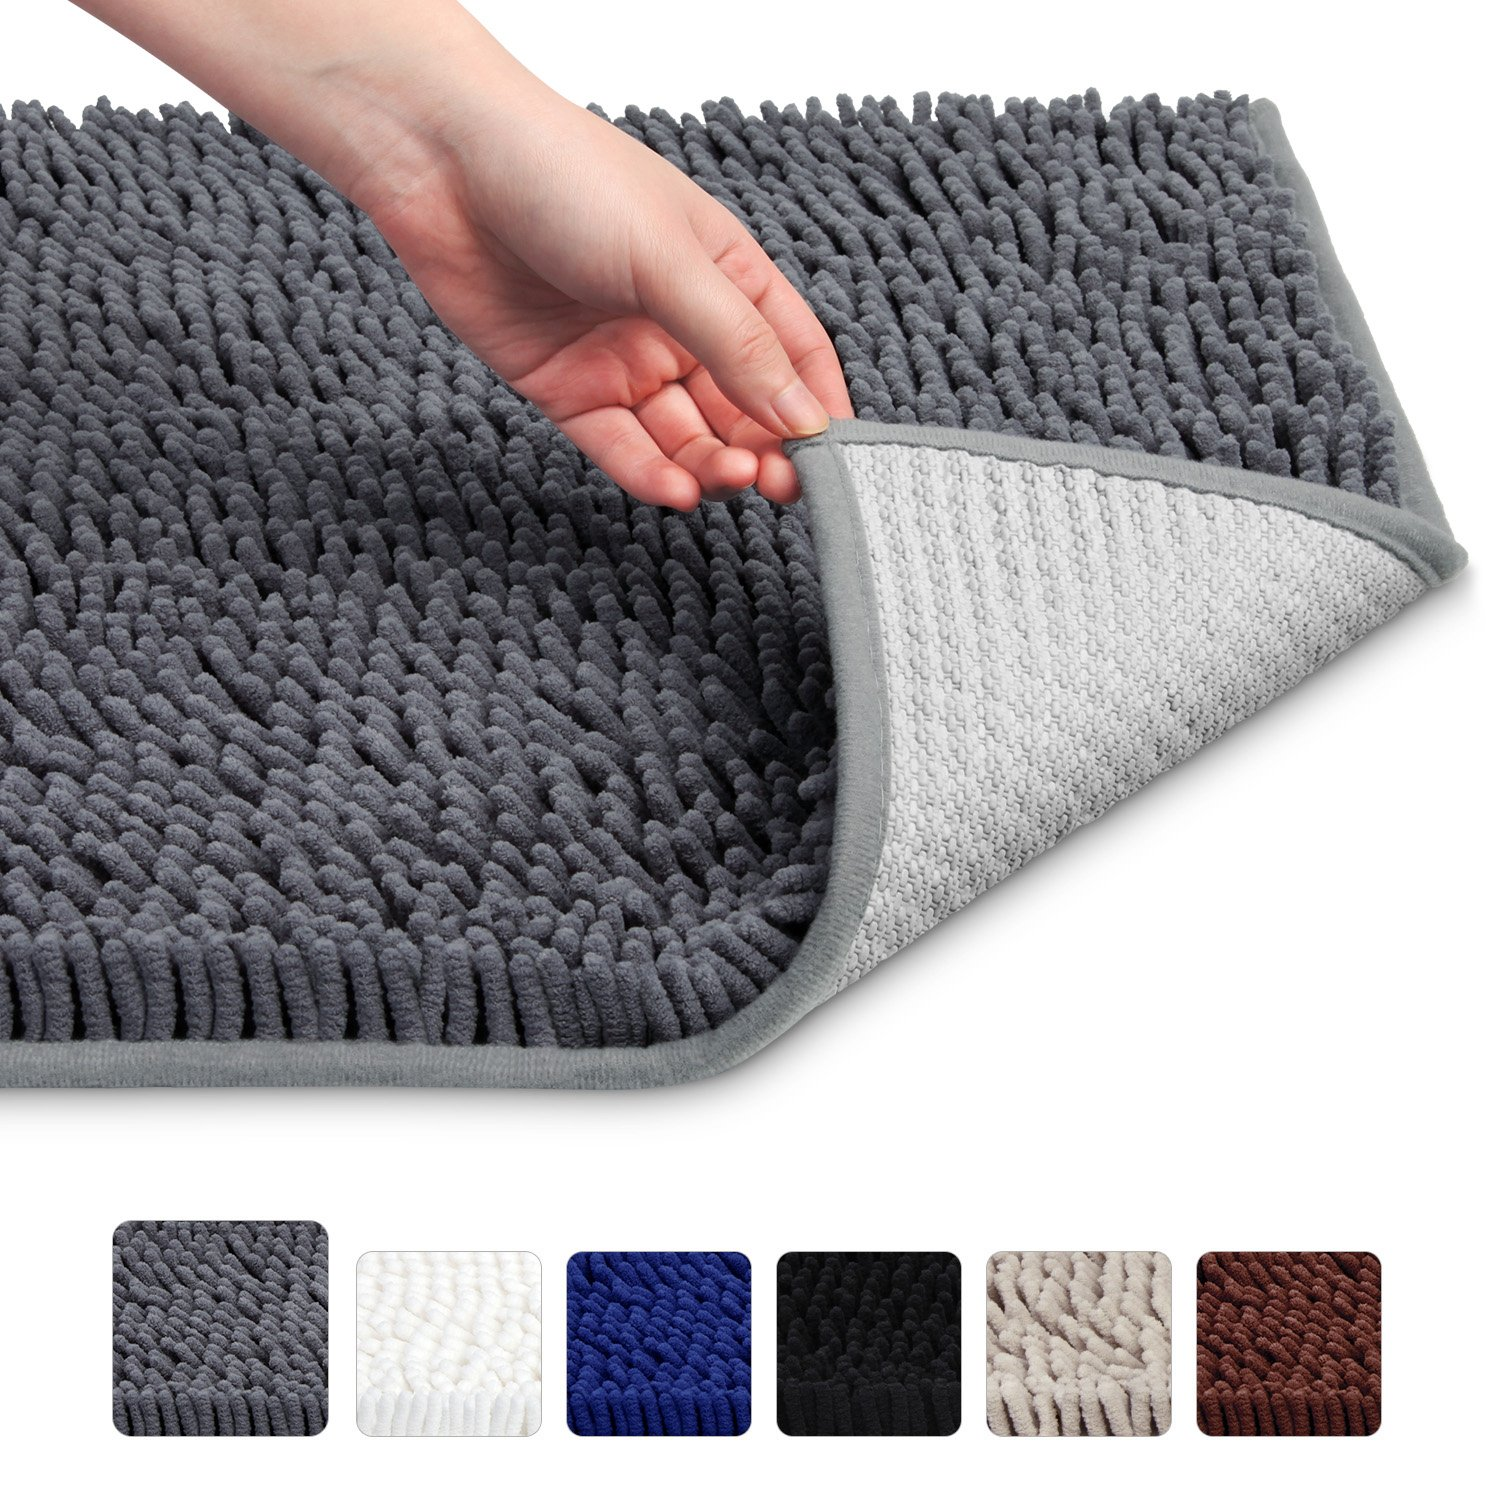 The Best Bathroom Rugs And Non-Slip Mats: Reviews & Buying Guide 6